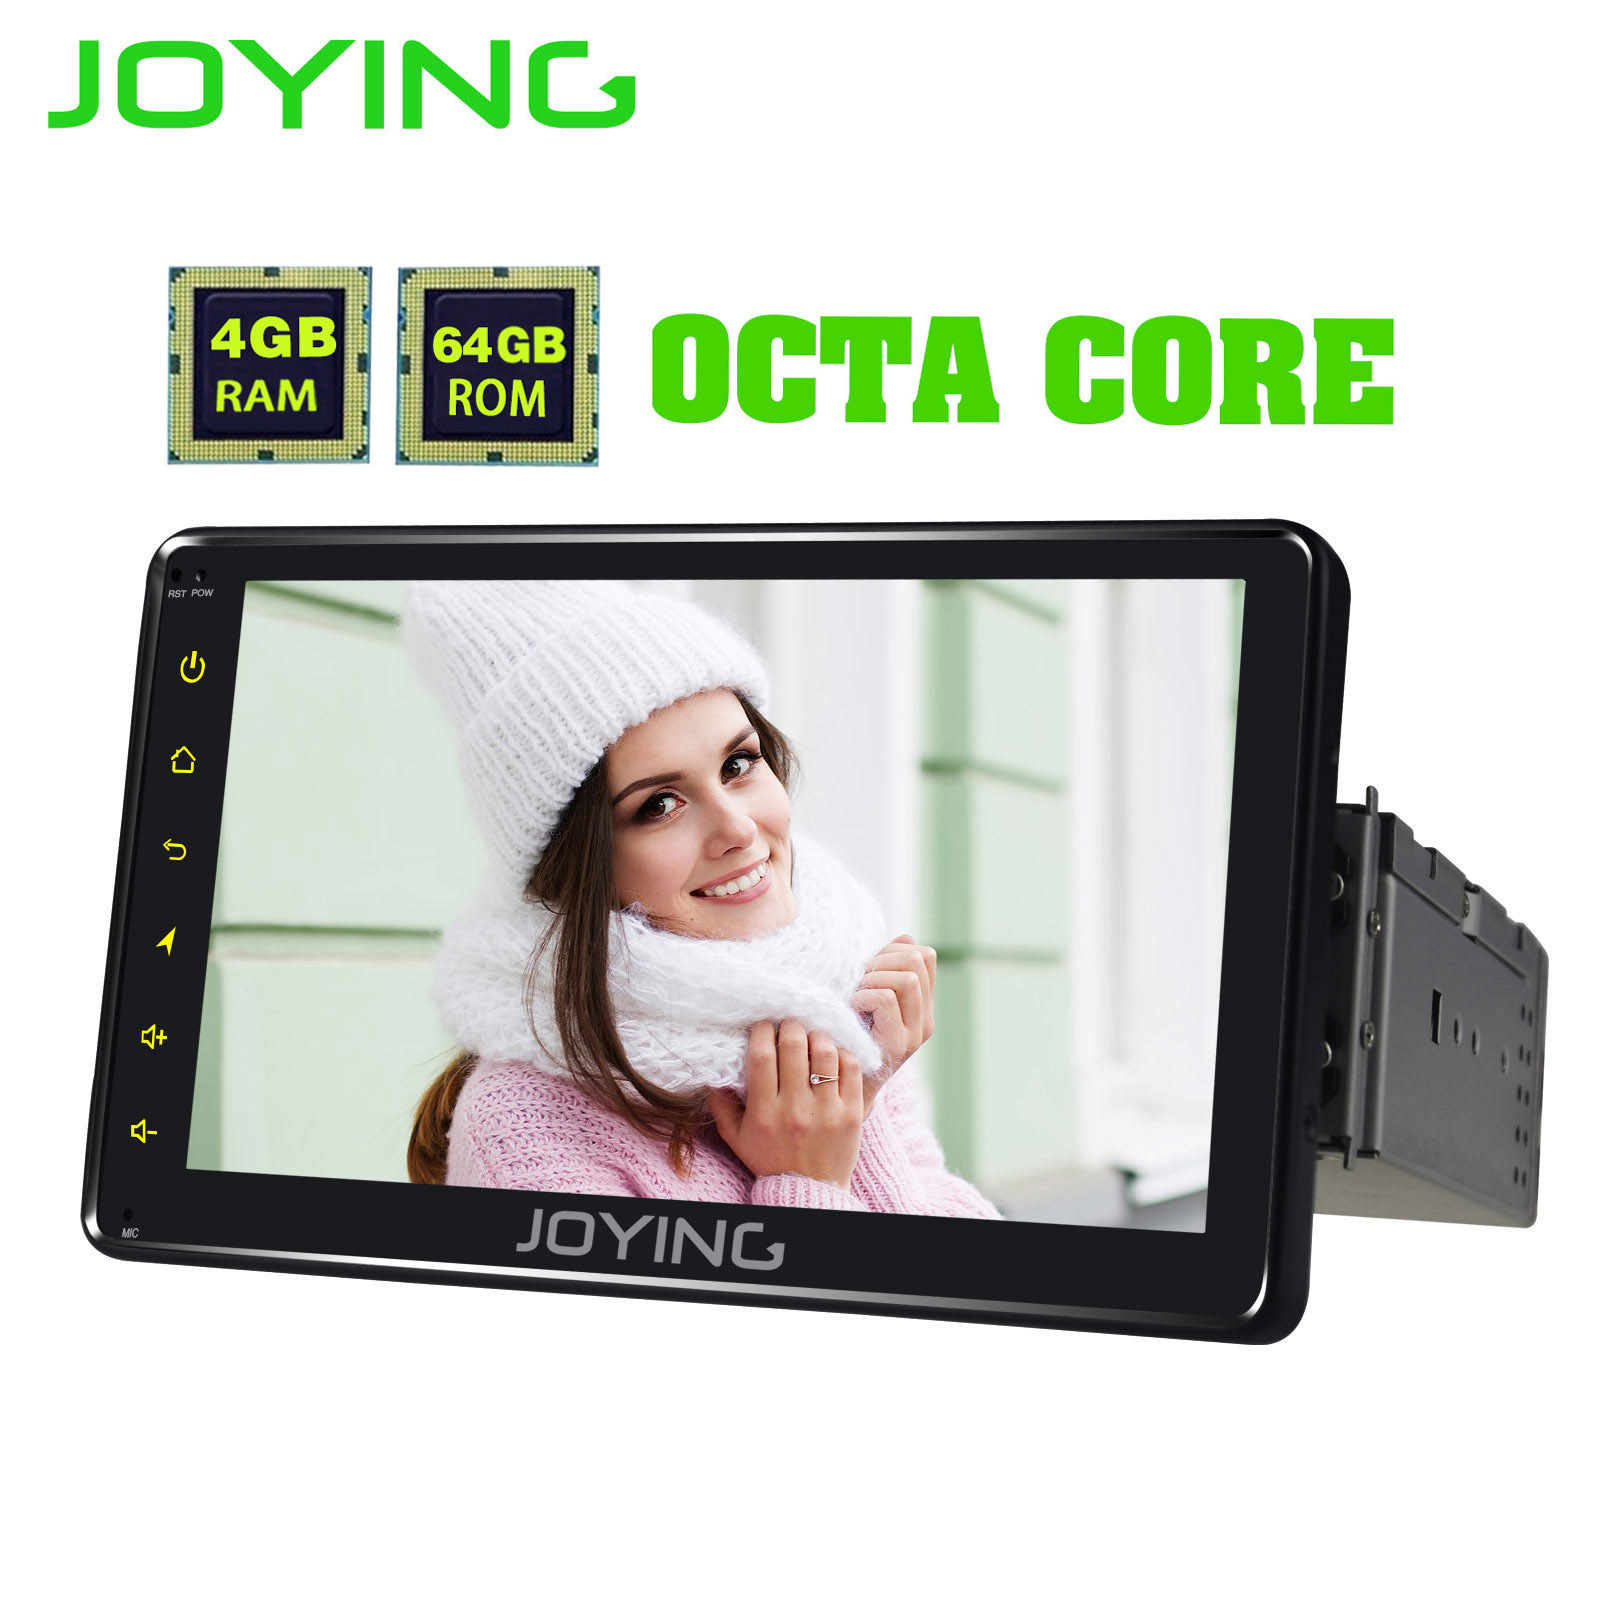 JOYING 8 CORE 4G RAM <font><b>Android</b></font> 8.1 car <font><b>radio</b></font> 1 din 7/8/9/<font><b>10.1</b></font> Inch car stereo Screen 64G ROM GPS navigation head unit WIFI Carplay image